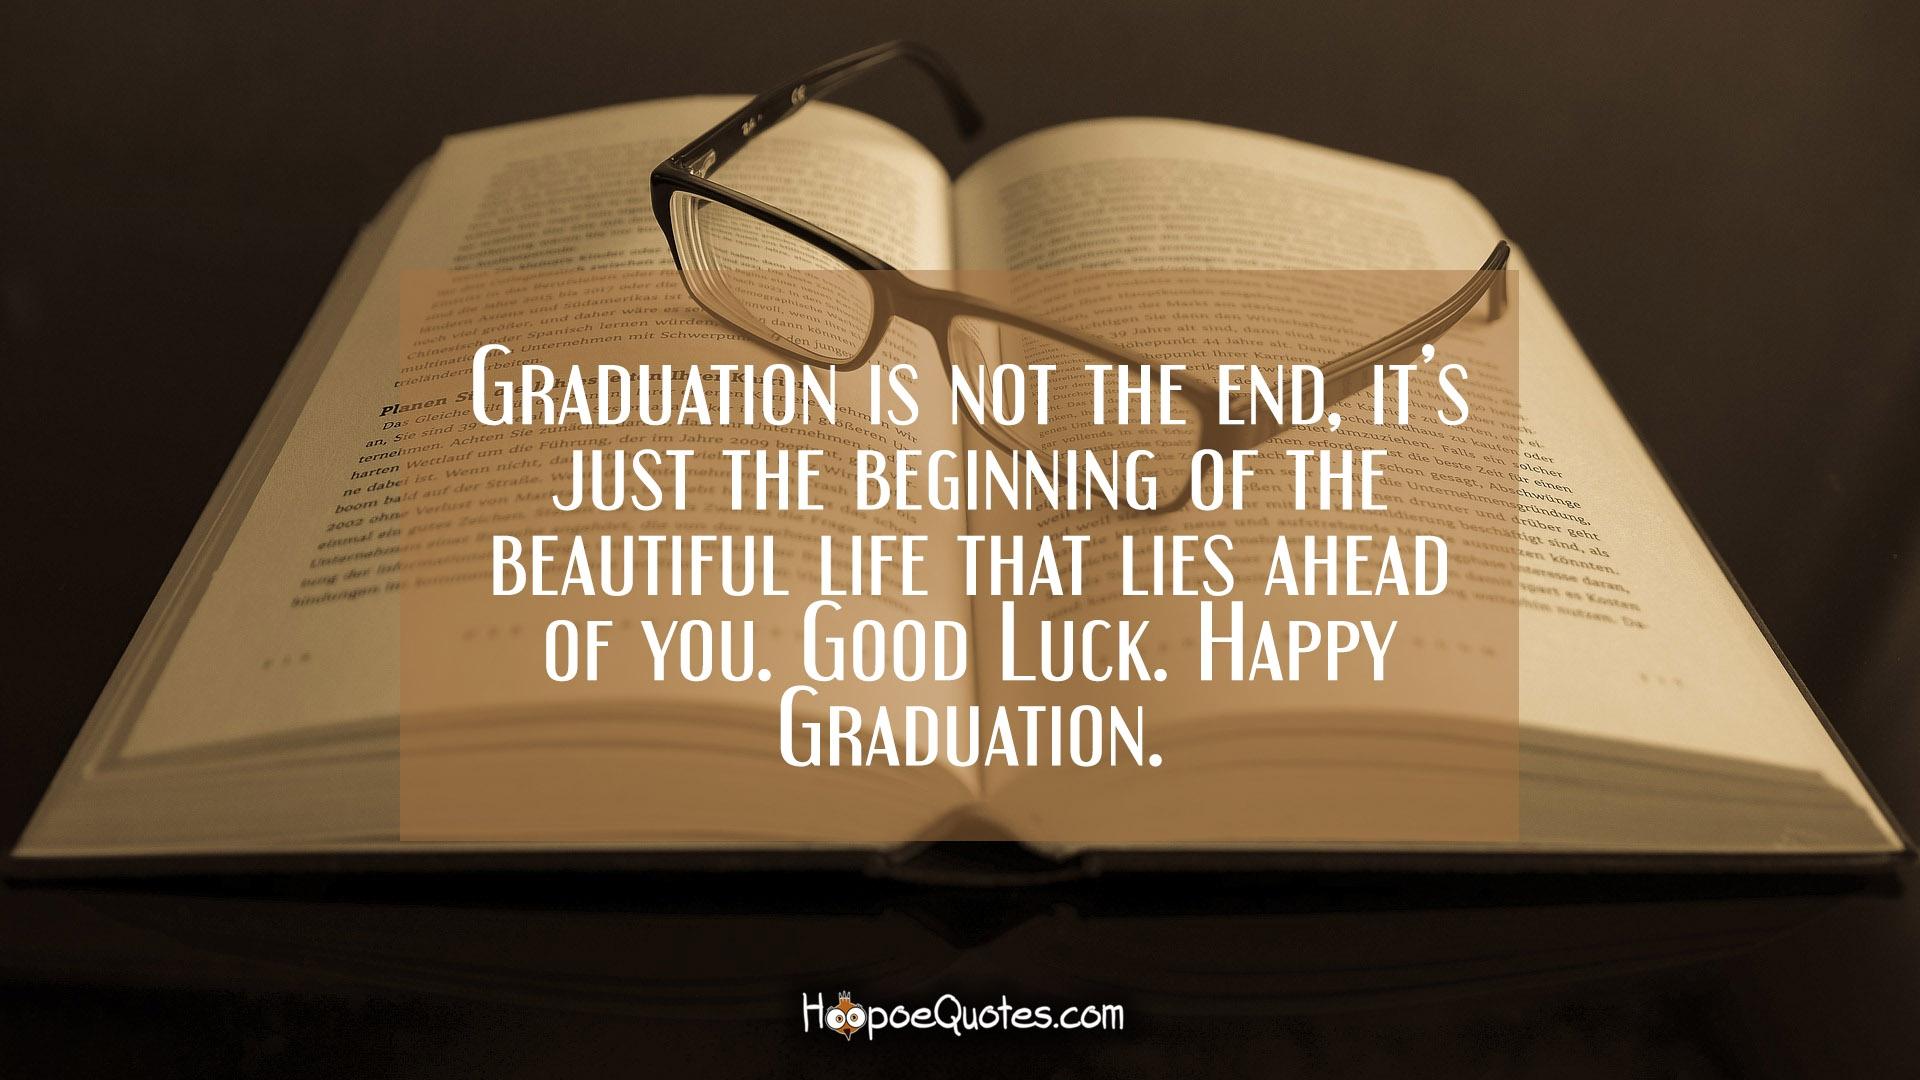 Graduation is not the end, it's just the beginning of the ...